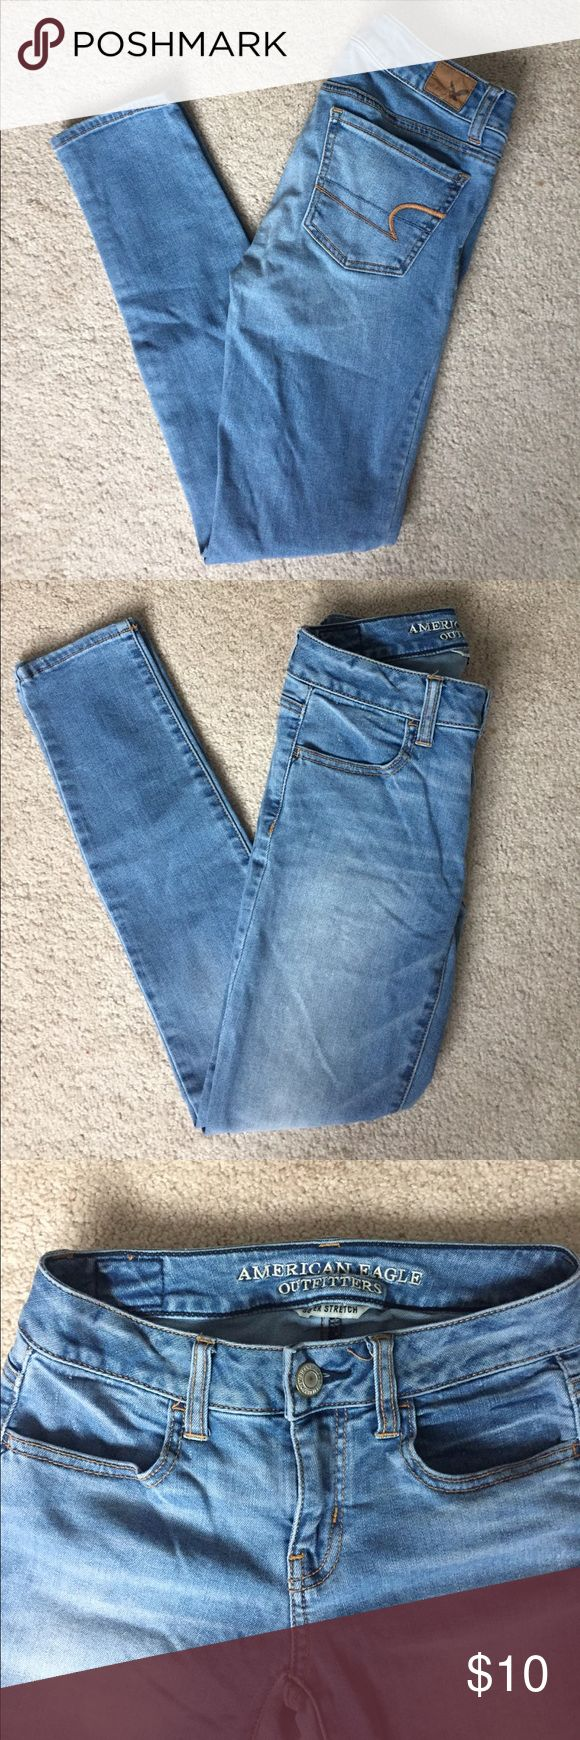 American Eagle Jeggings American eagle Jeggings. Size 0. Great condition!! American Eagle Outfitters Jeans Skinny